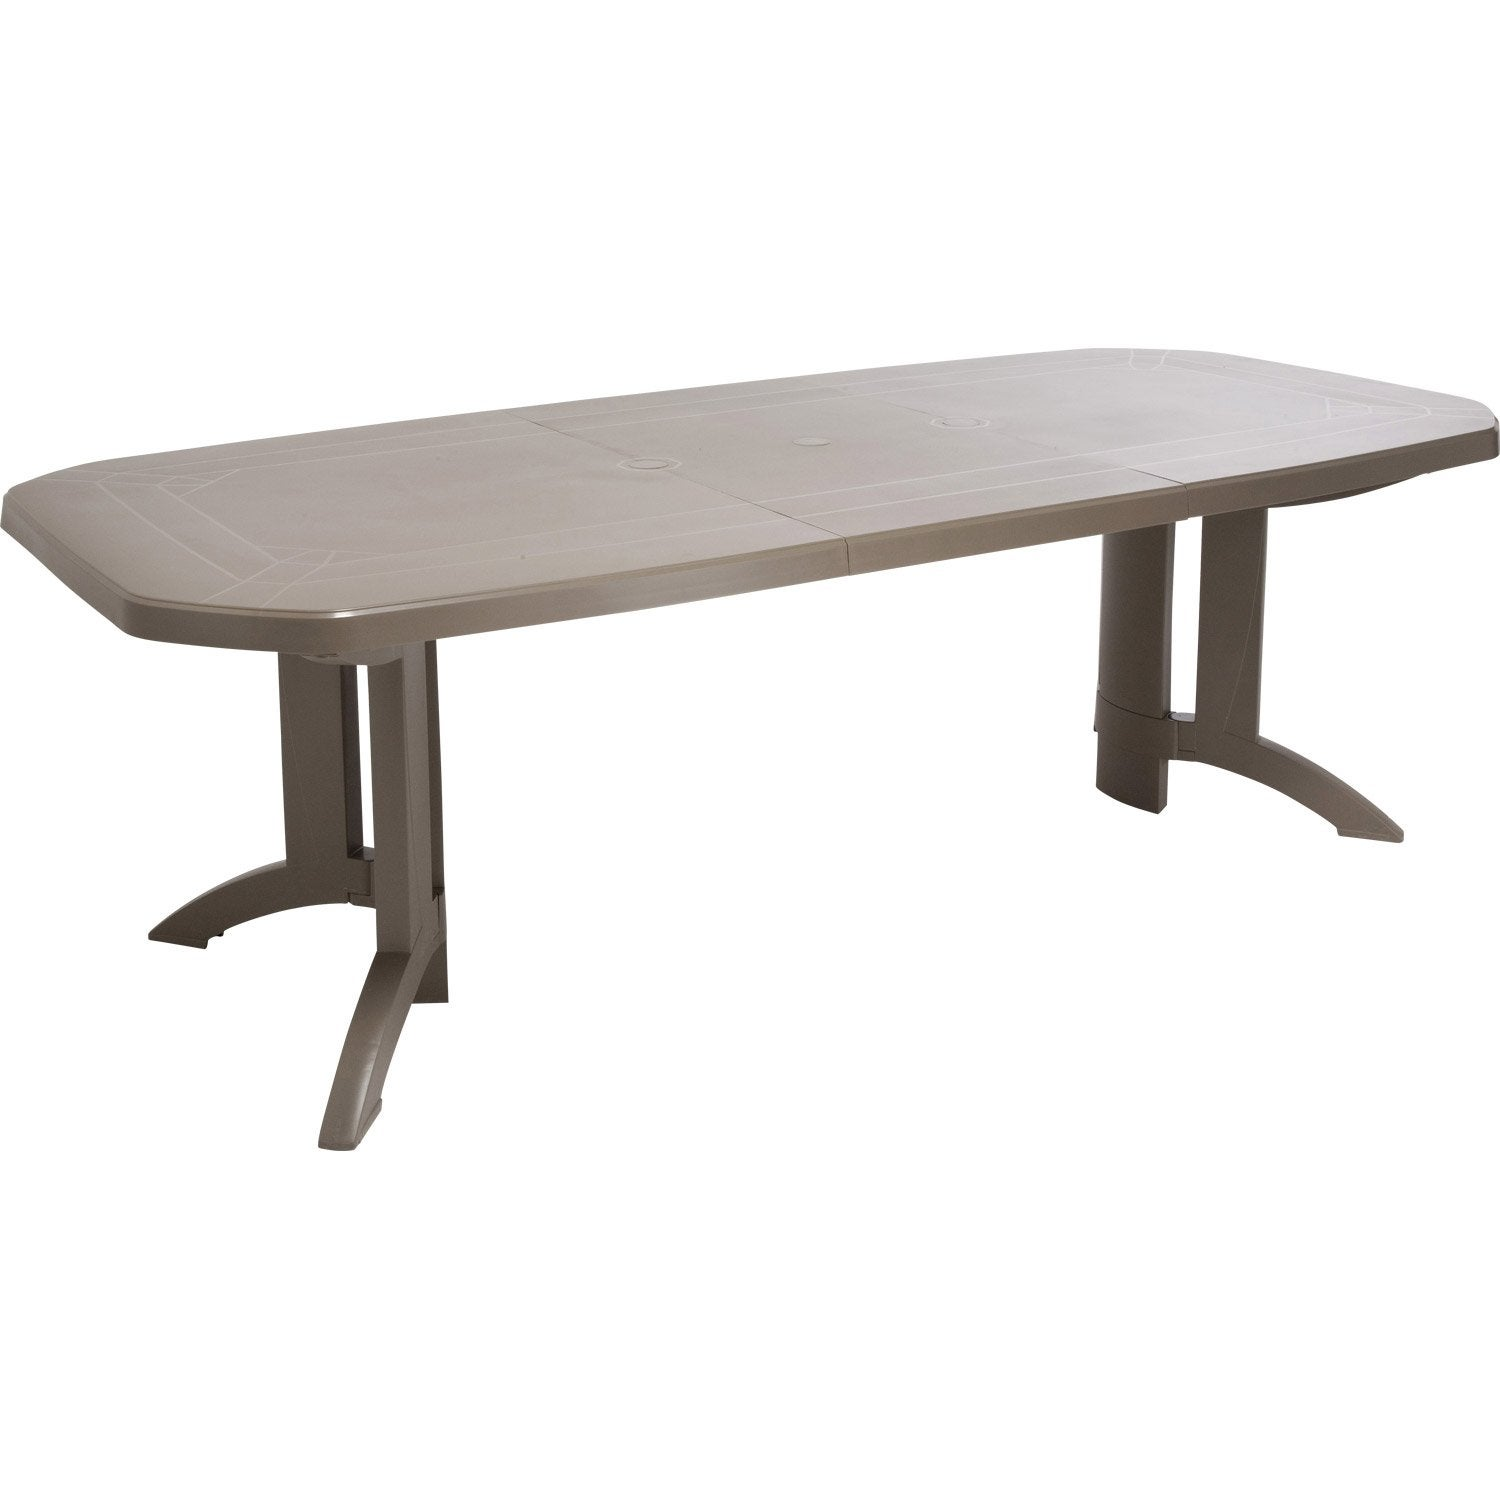 Table de jardin GROSFILLEX Véga rectangulaire taupe 10 ...